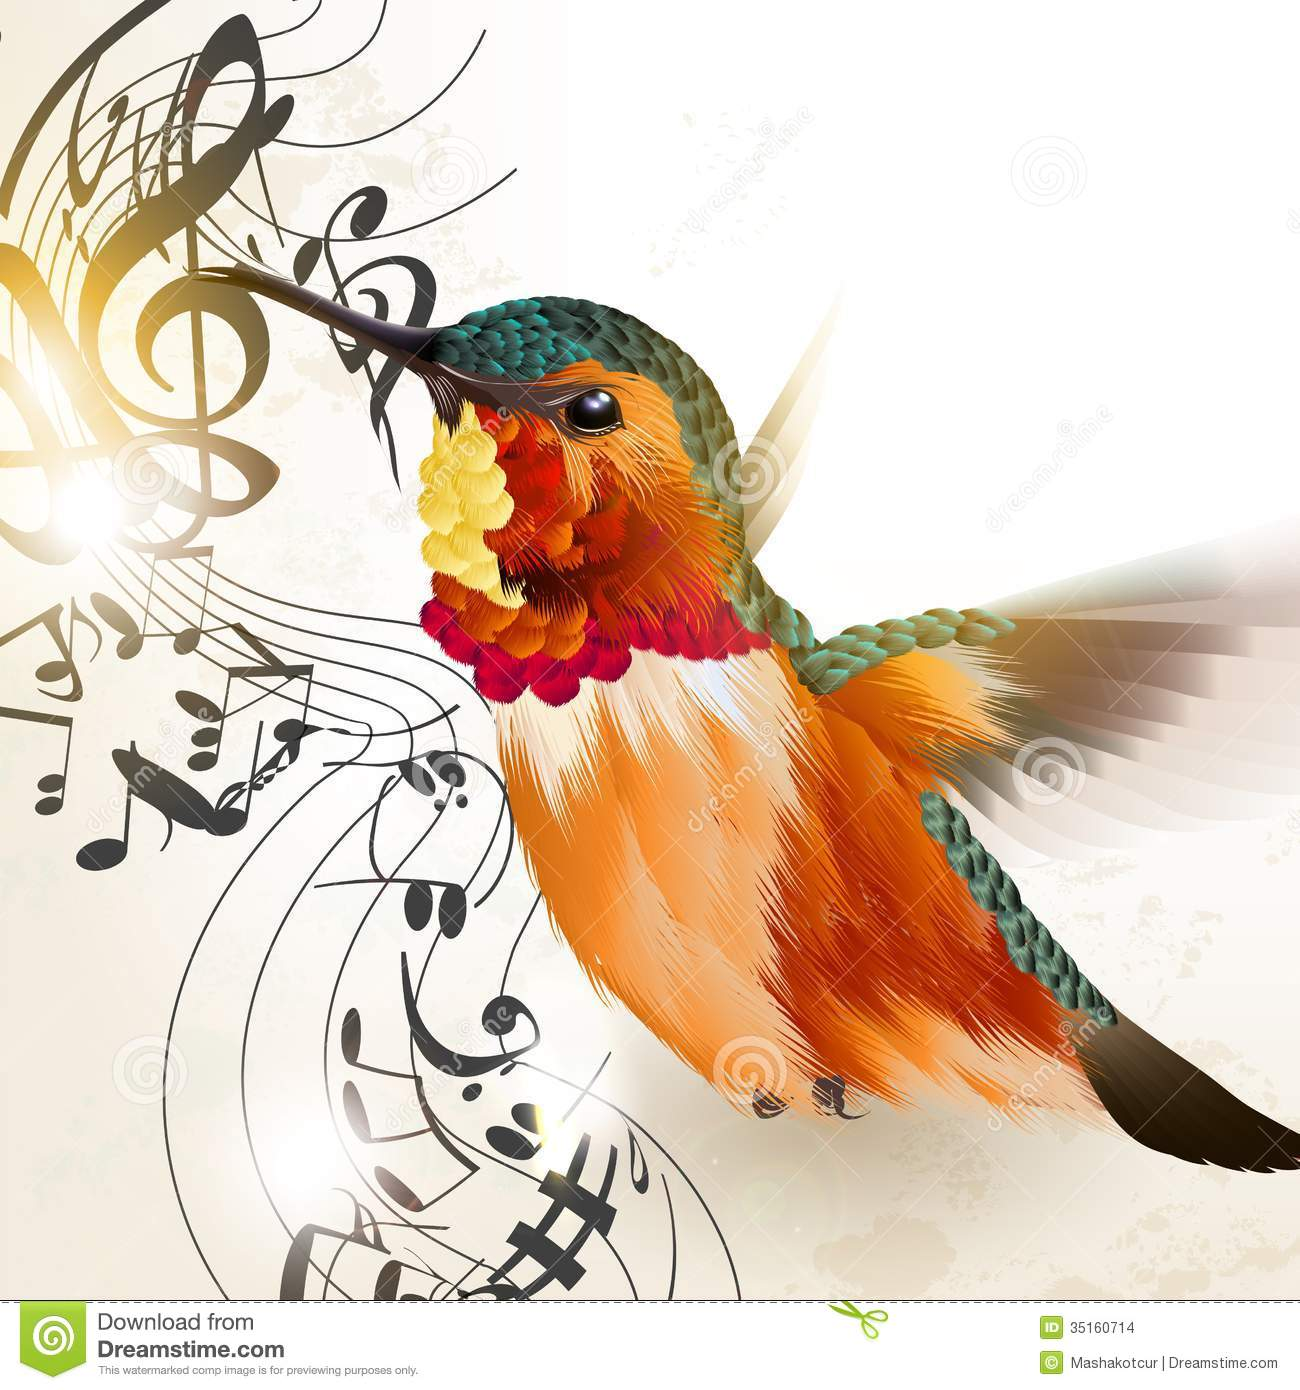 ... Background With Humming Bird And Notes Stock Images - Image: 35160714